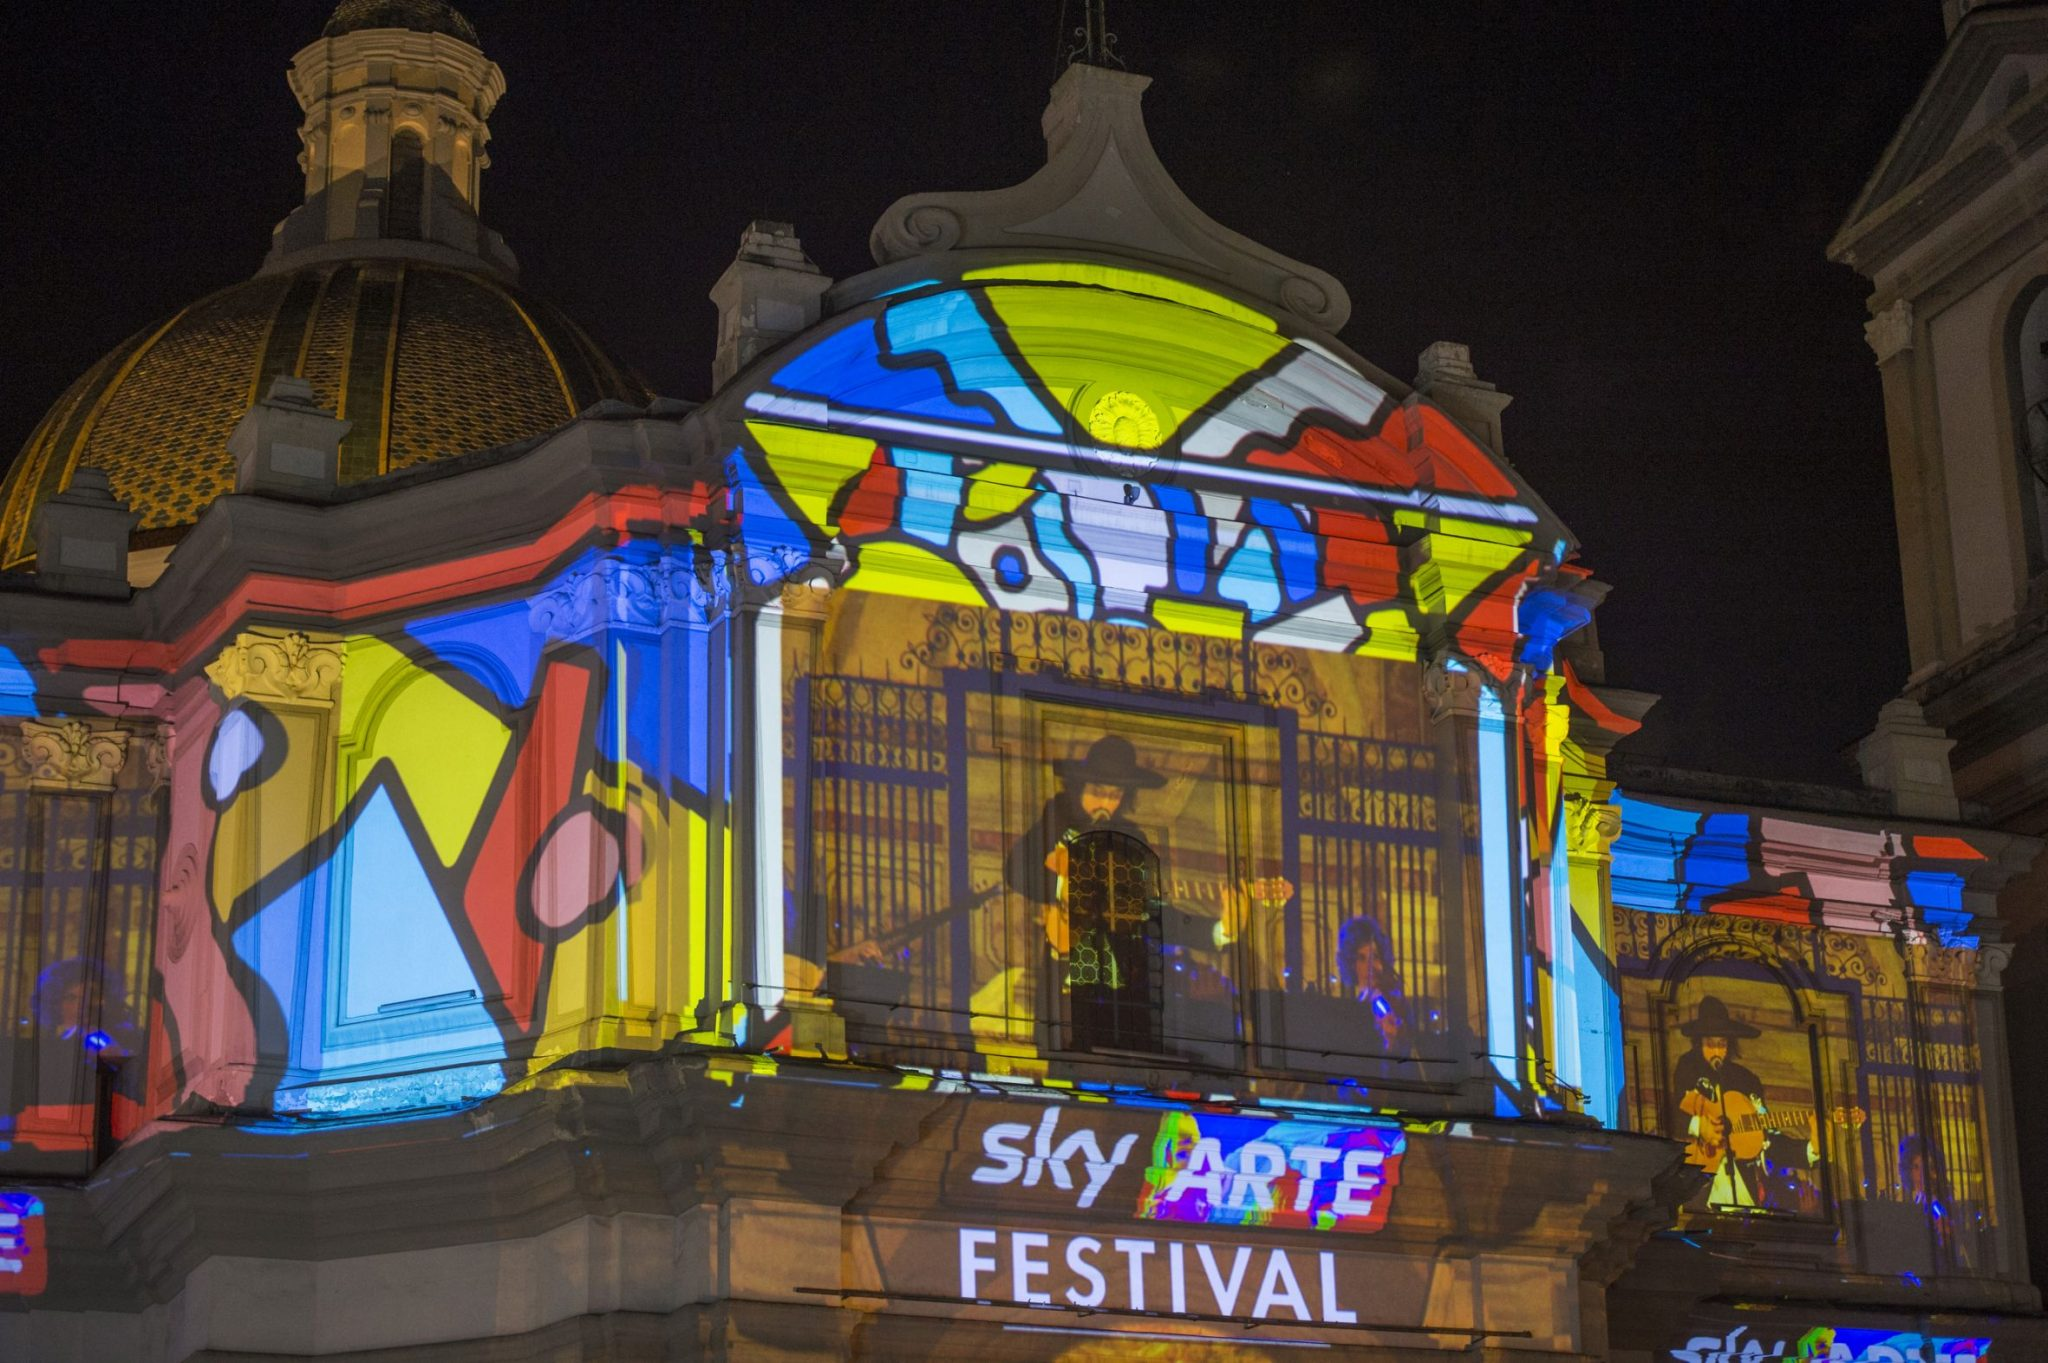 sky arte festival